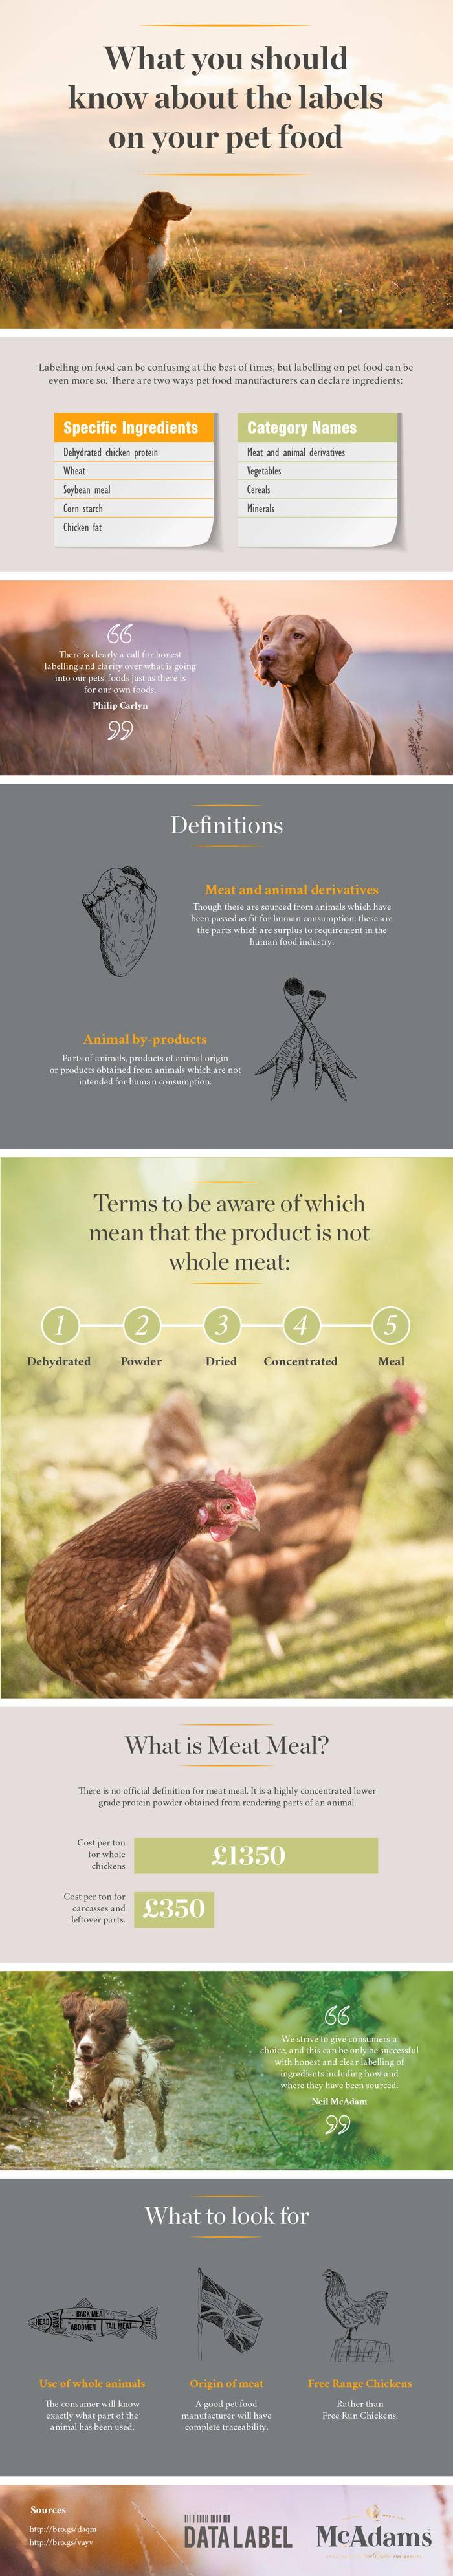 Pet food labelling infographic